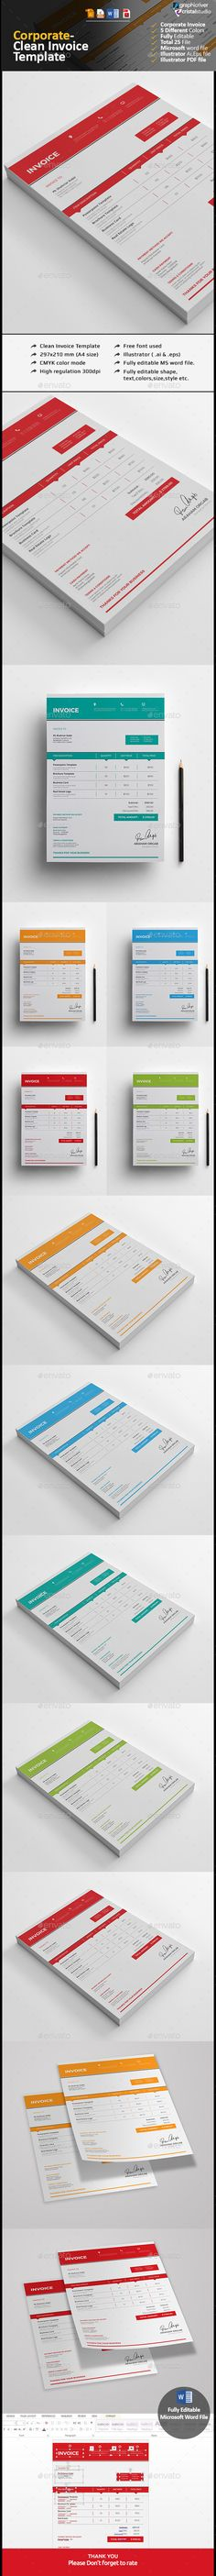 Invoices  Proposals Photoshop And Stationery